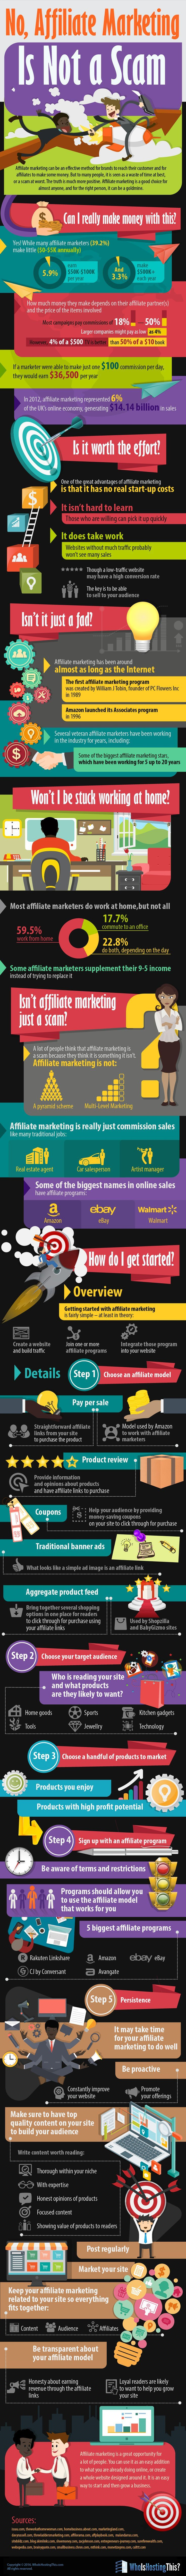 No, Affiliate Marketing Is Not a Scam #Infographic #Business #Marketing